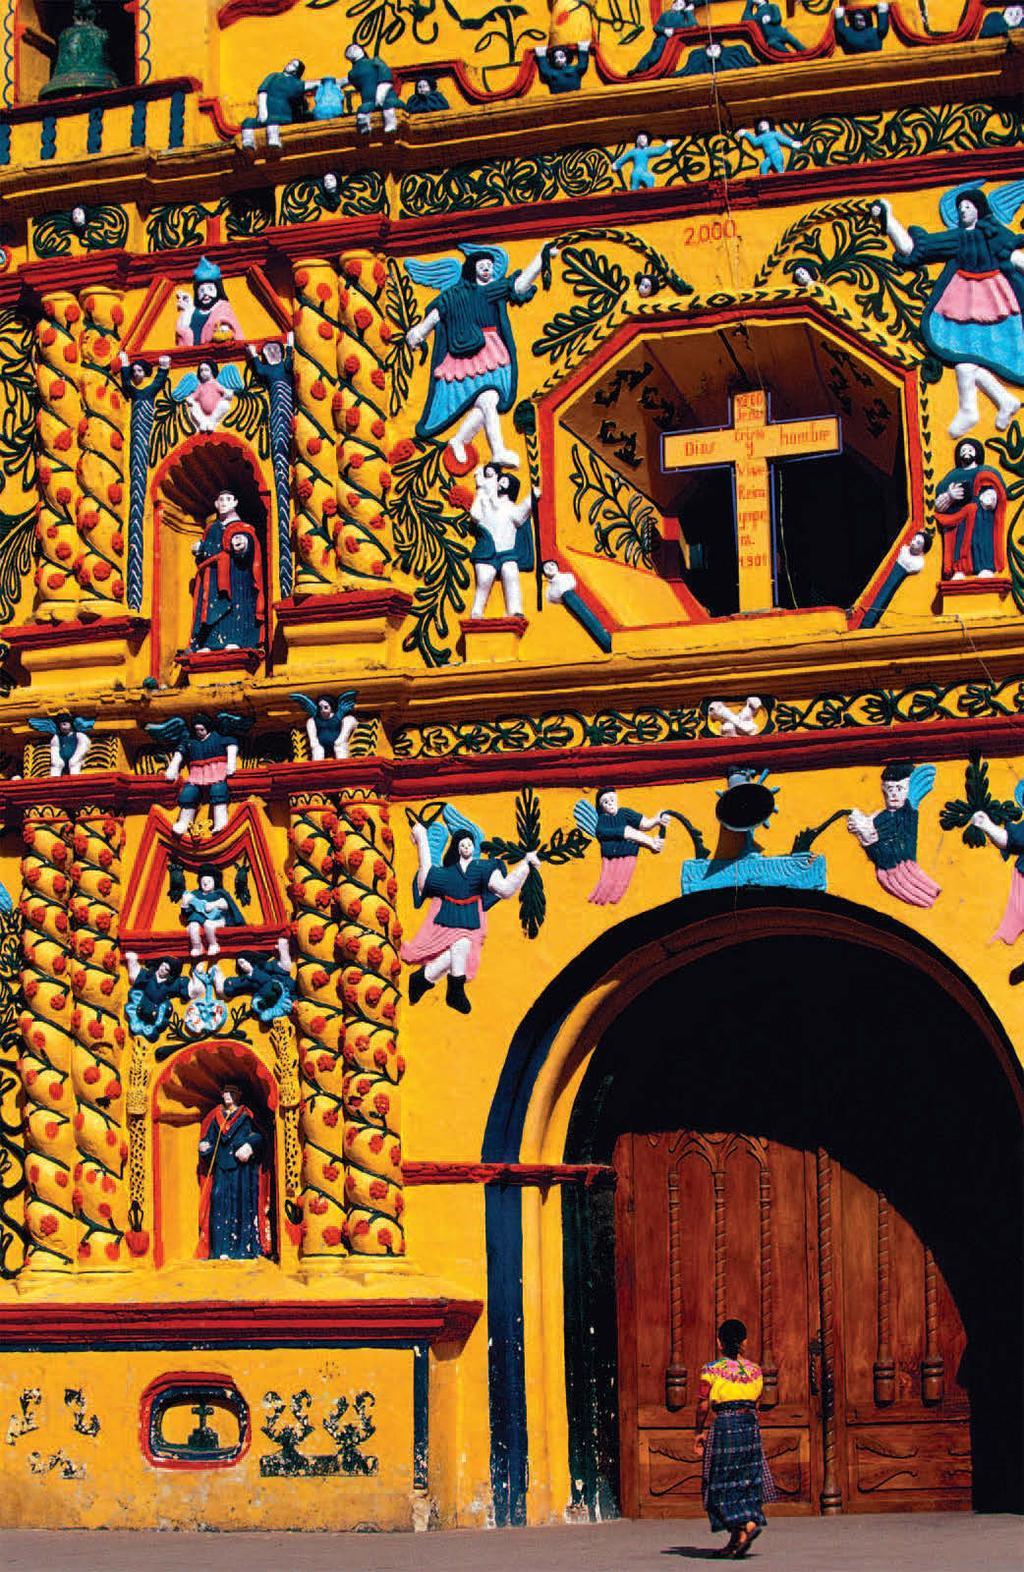 The Rough Guide To Guatemala Expert Advice Full Coverage Easy Swan From Prison Break Diagram Origami Shrine 3 This Sixth Edition Updated By Iain Stewart Roughguidescom